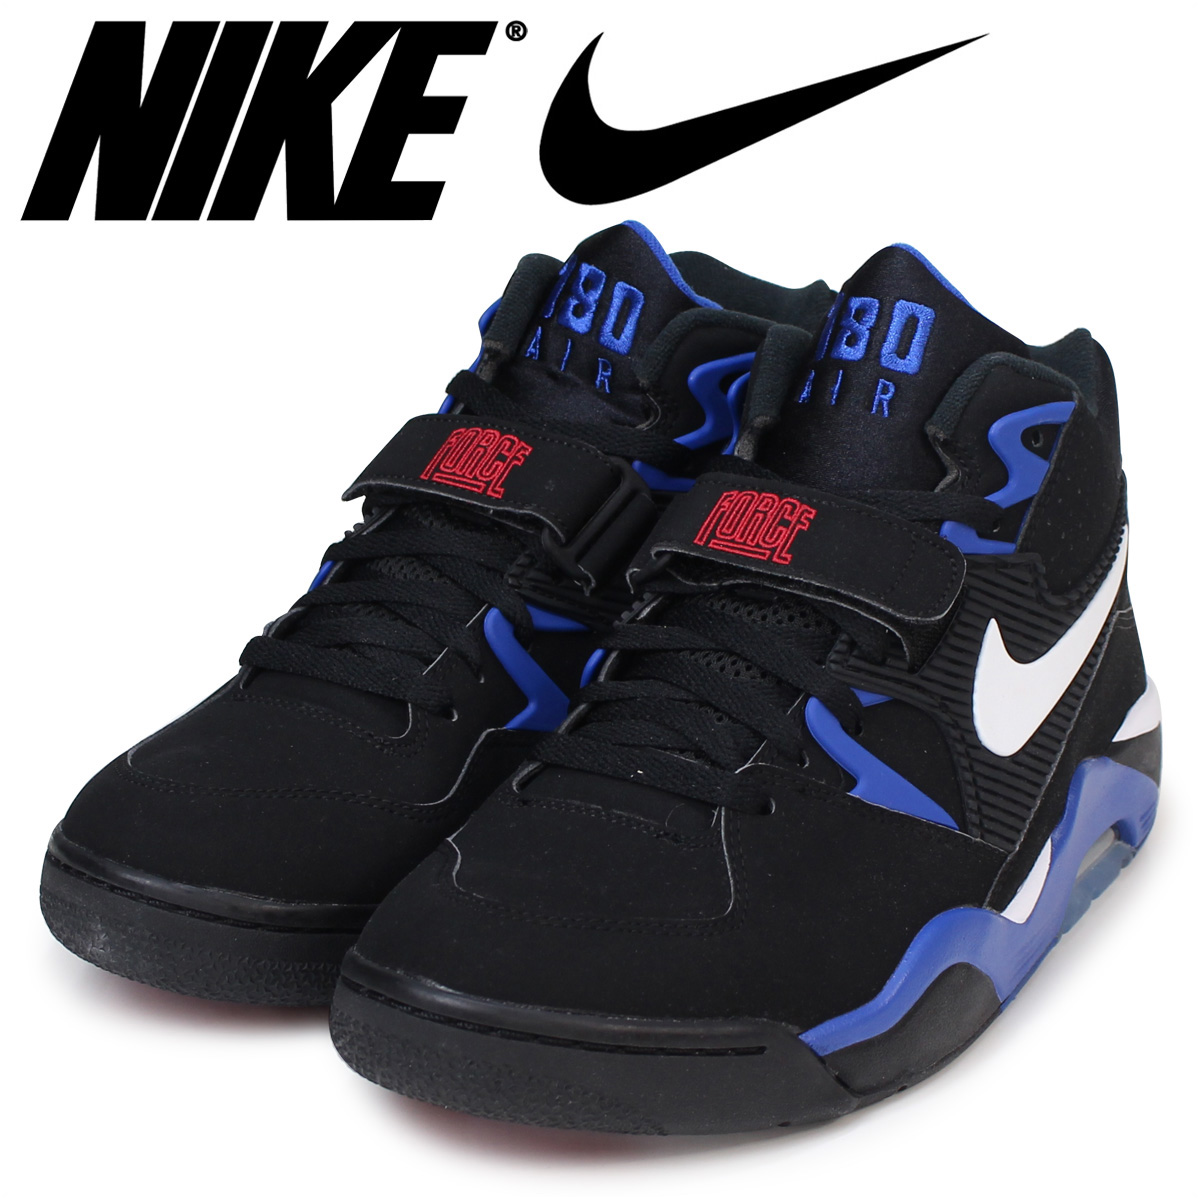 nike air force 180 price philippines smartphone